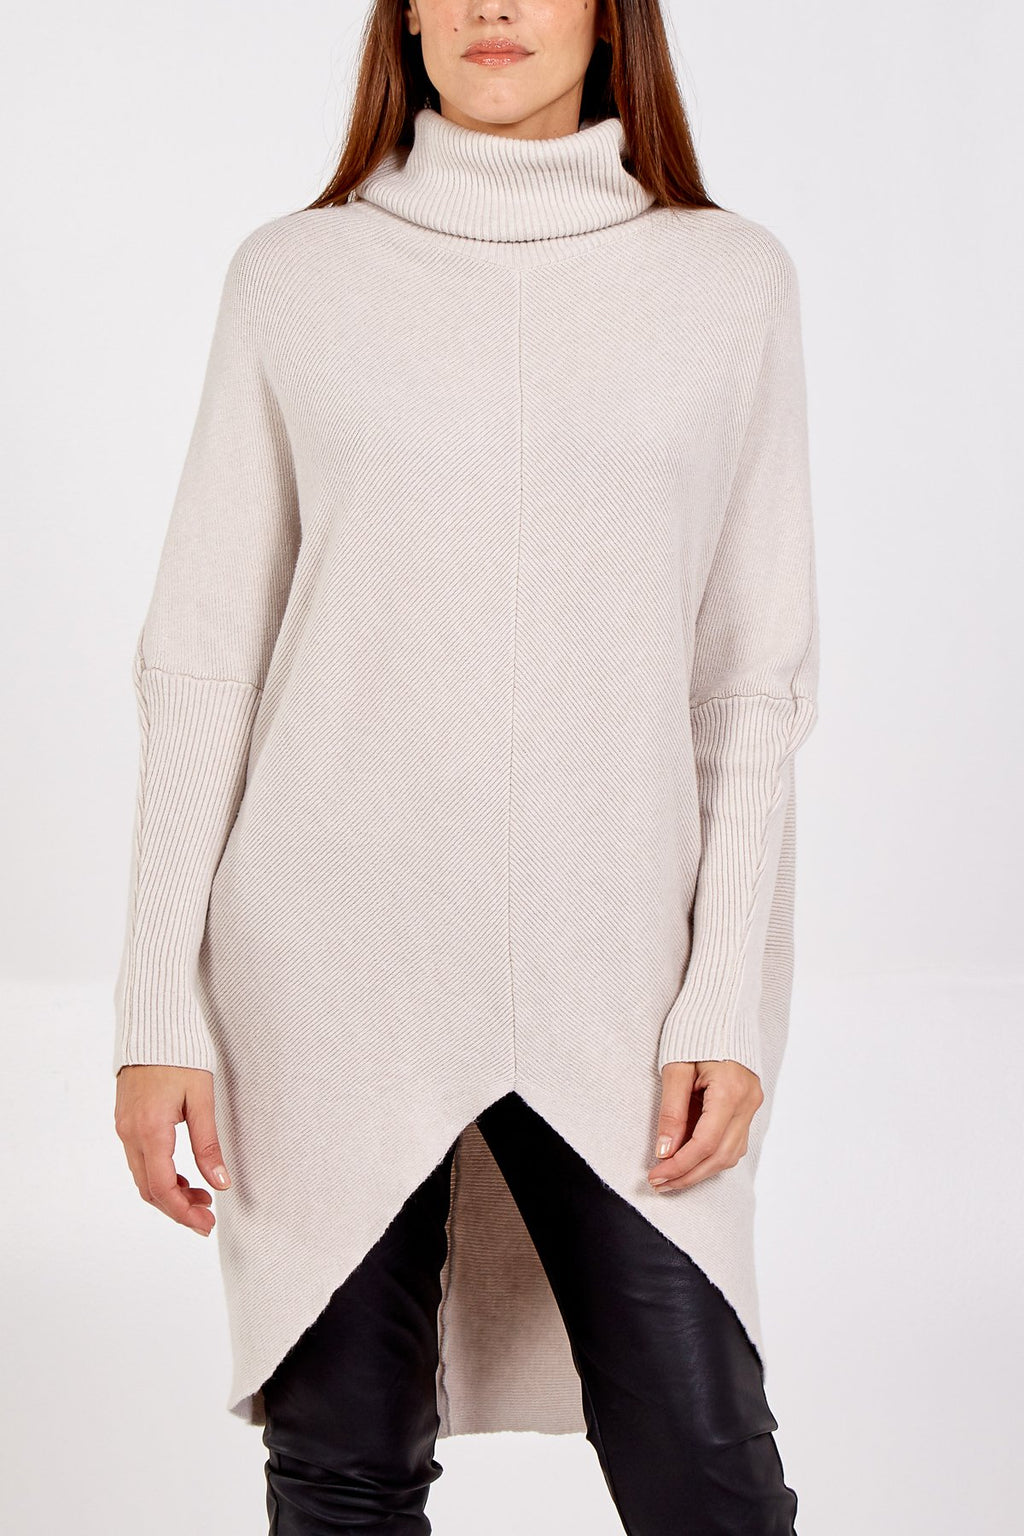 Soft Cream Roll Neck Jumper Dress - Gissings Boutique